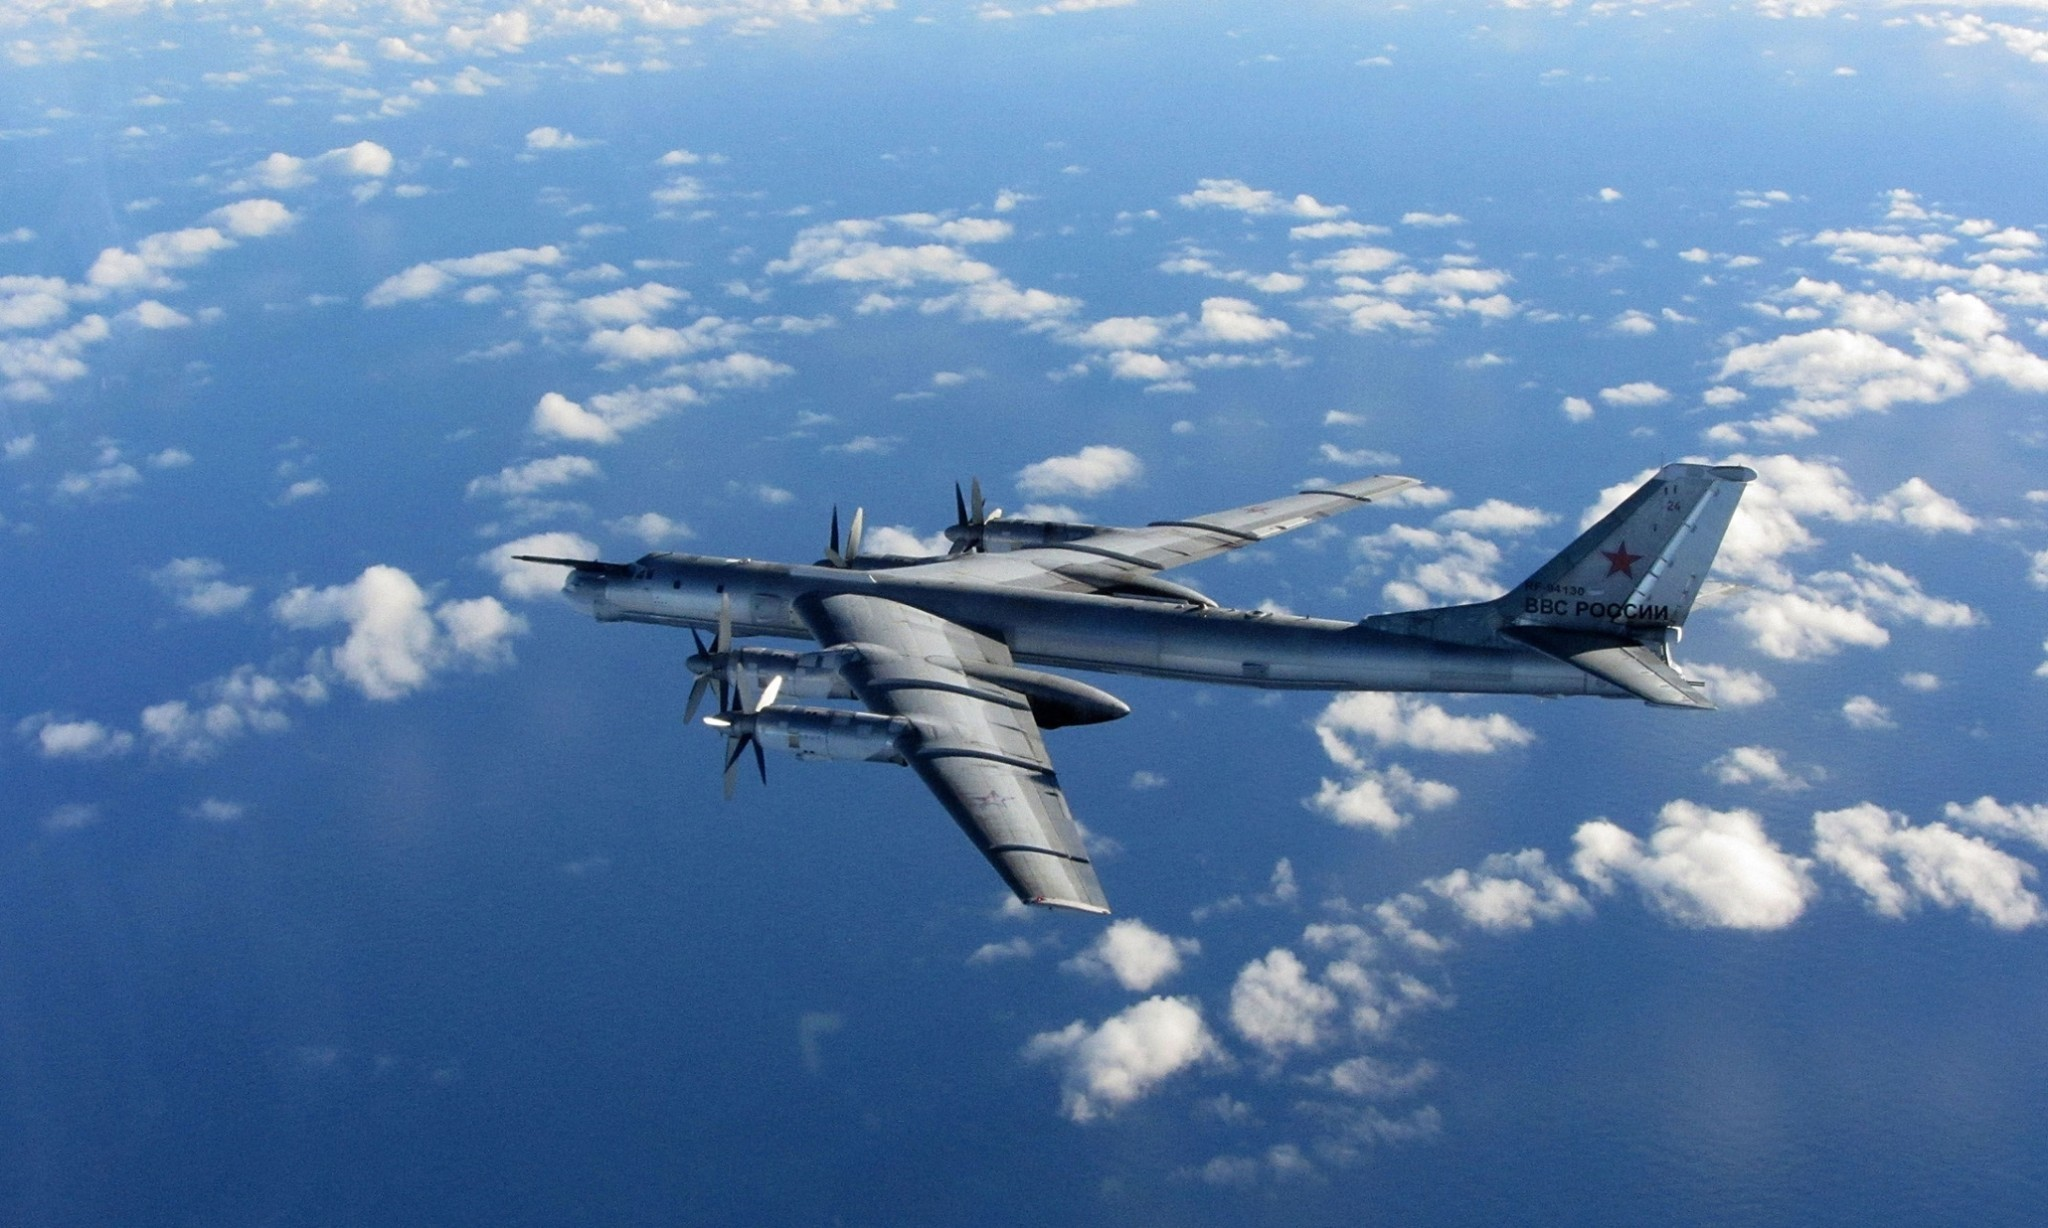 Russian bomber flew inland over Cornwall, witness claims